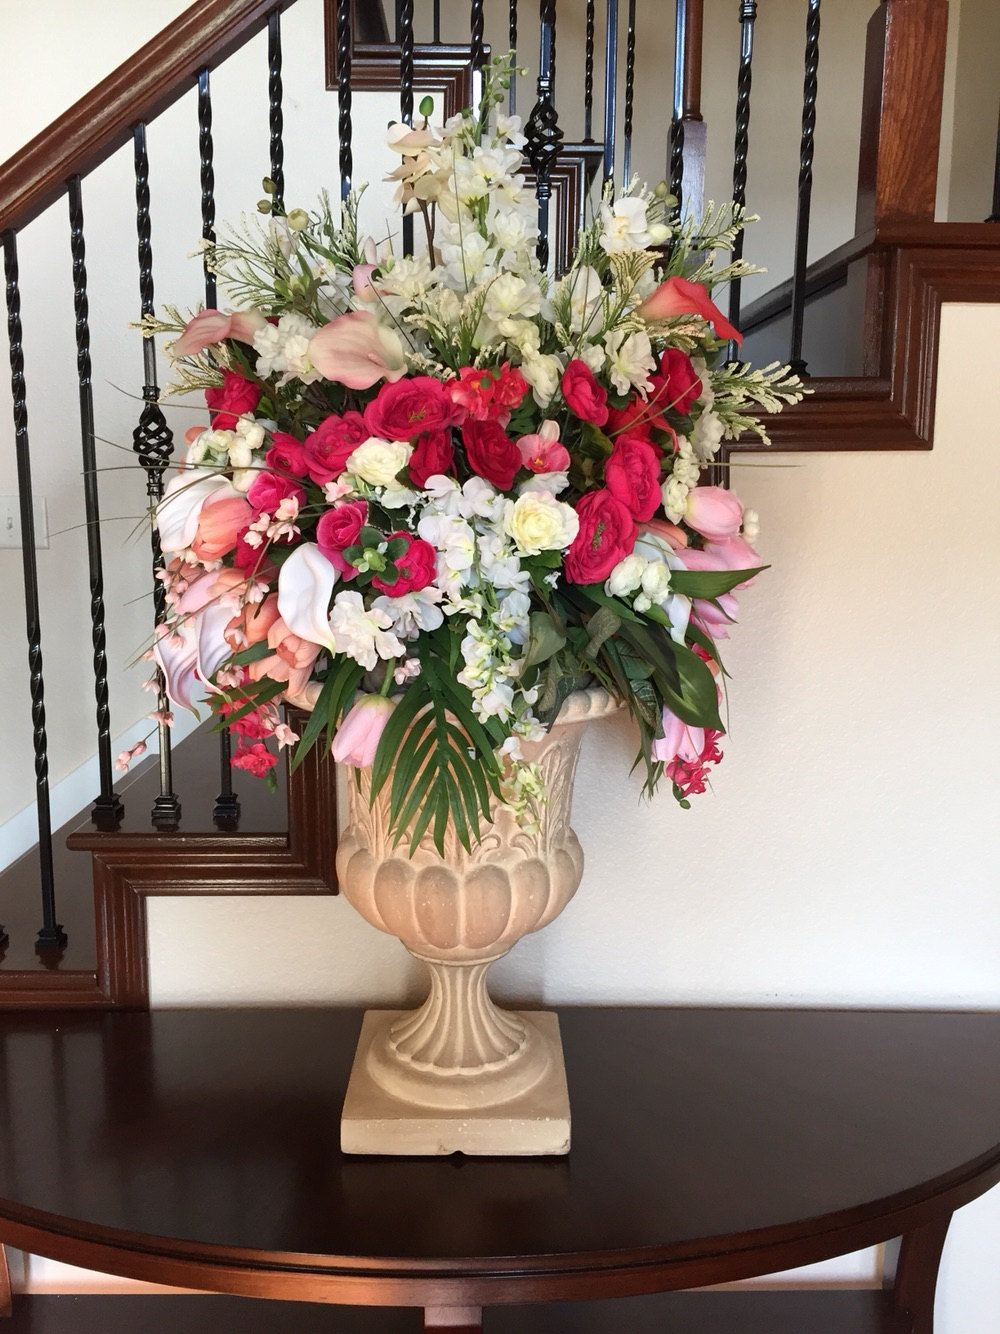 Foyer Table Floral Arrangements : Cascading floral arrangement elegant wedding centerpiece